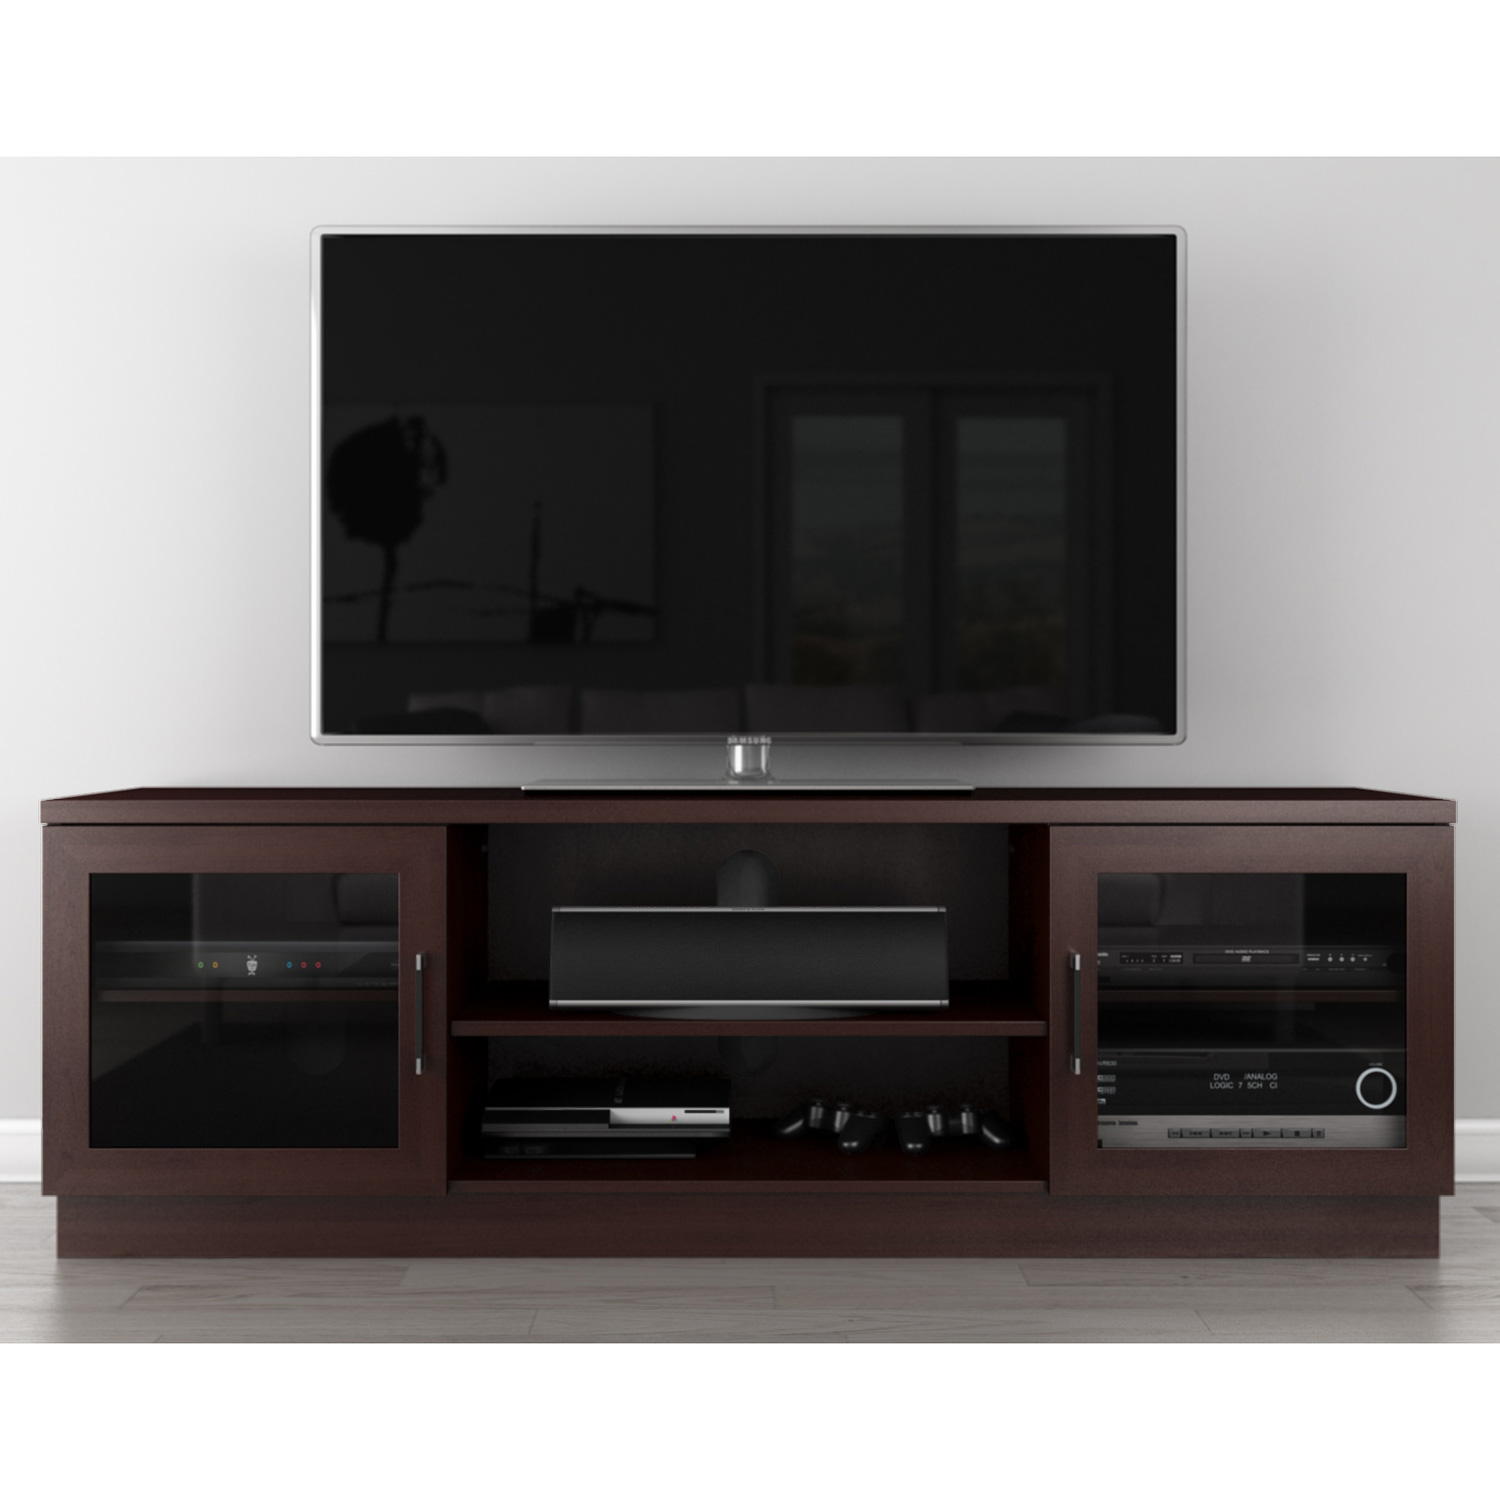 Furnitech Ft70cc W Ft70cc W 70 Quot Tv Stand Contemporary